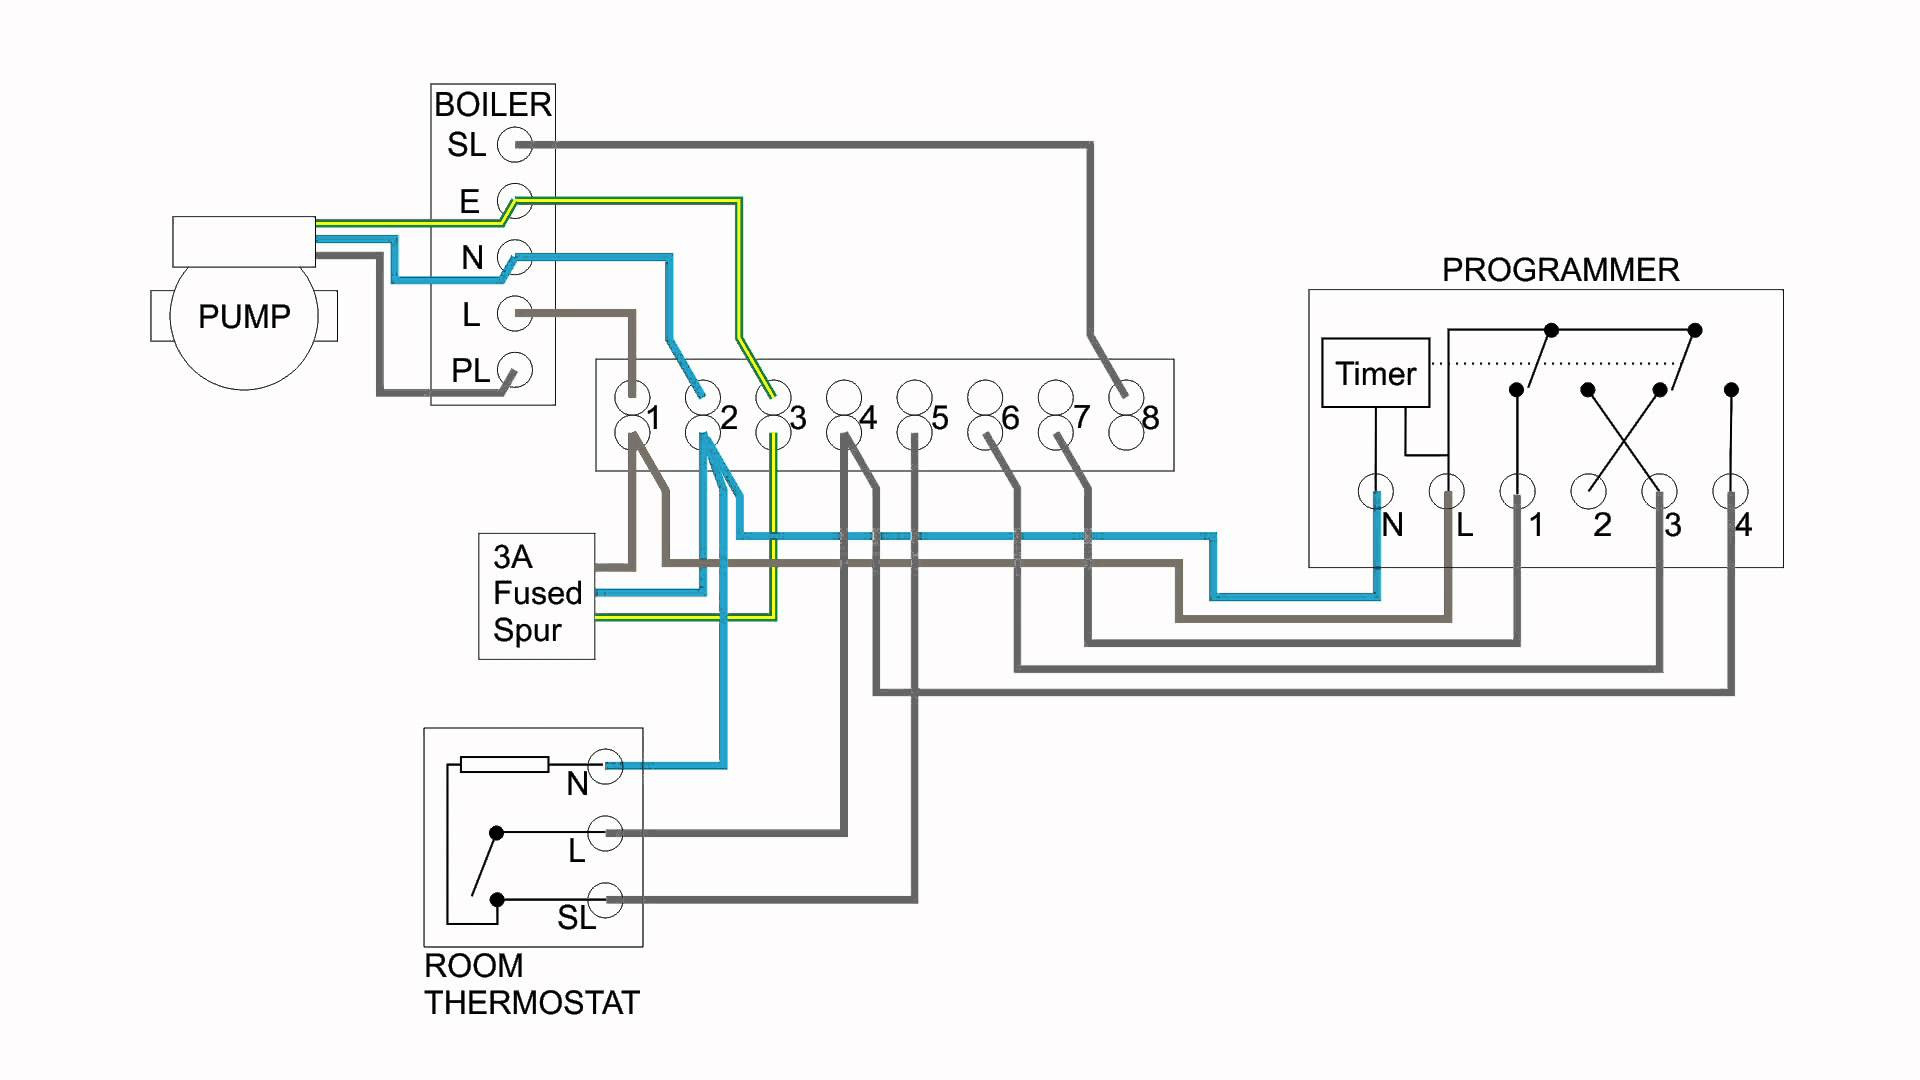 central boiler thermostat wiring diagram Collection-central boiler thermostat wiring diagram Download Hive Thermostat Wiring Diagram New Central Heating Electrical Wiring 8-d